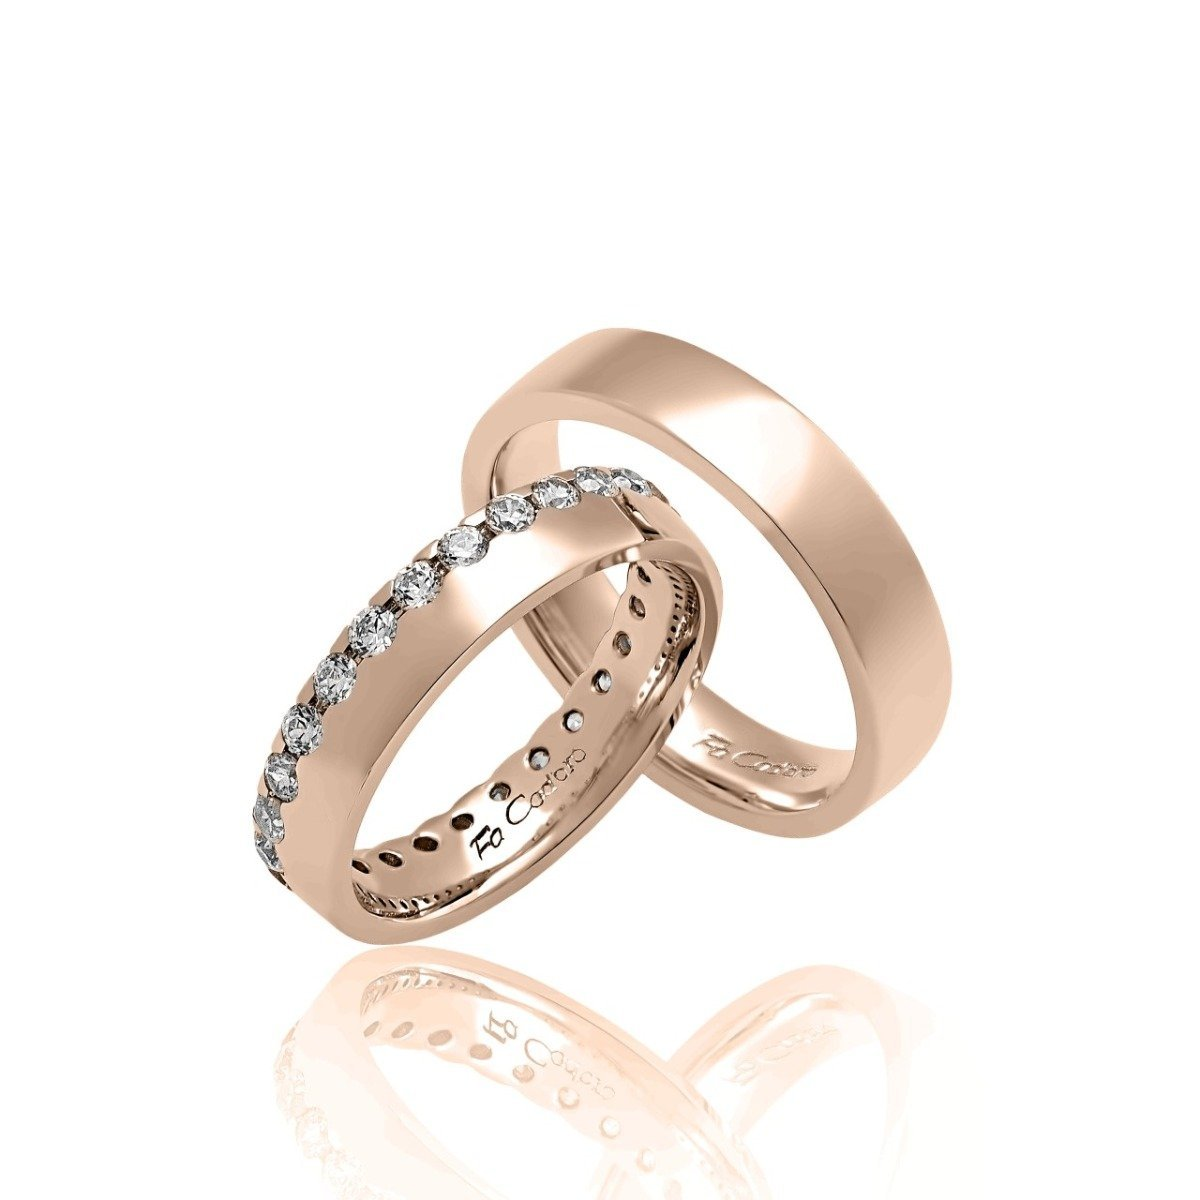 FaCad'oro WR-31 14ct Gold Wedding Rings - Goldy Jewelry Store